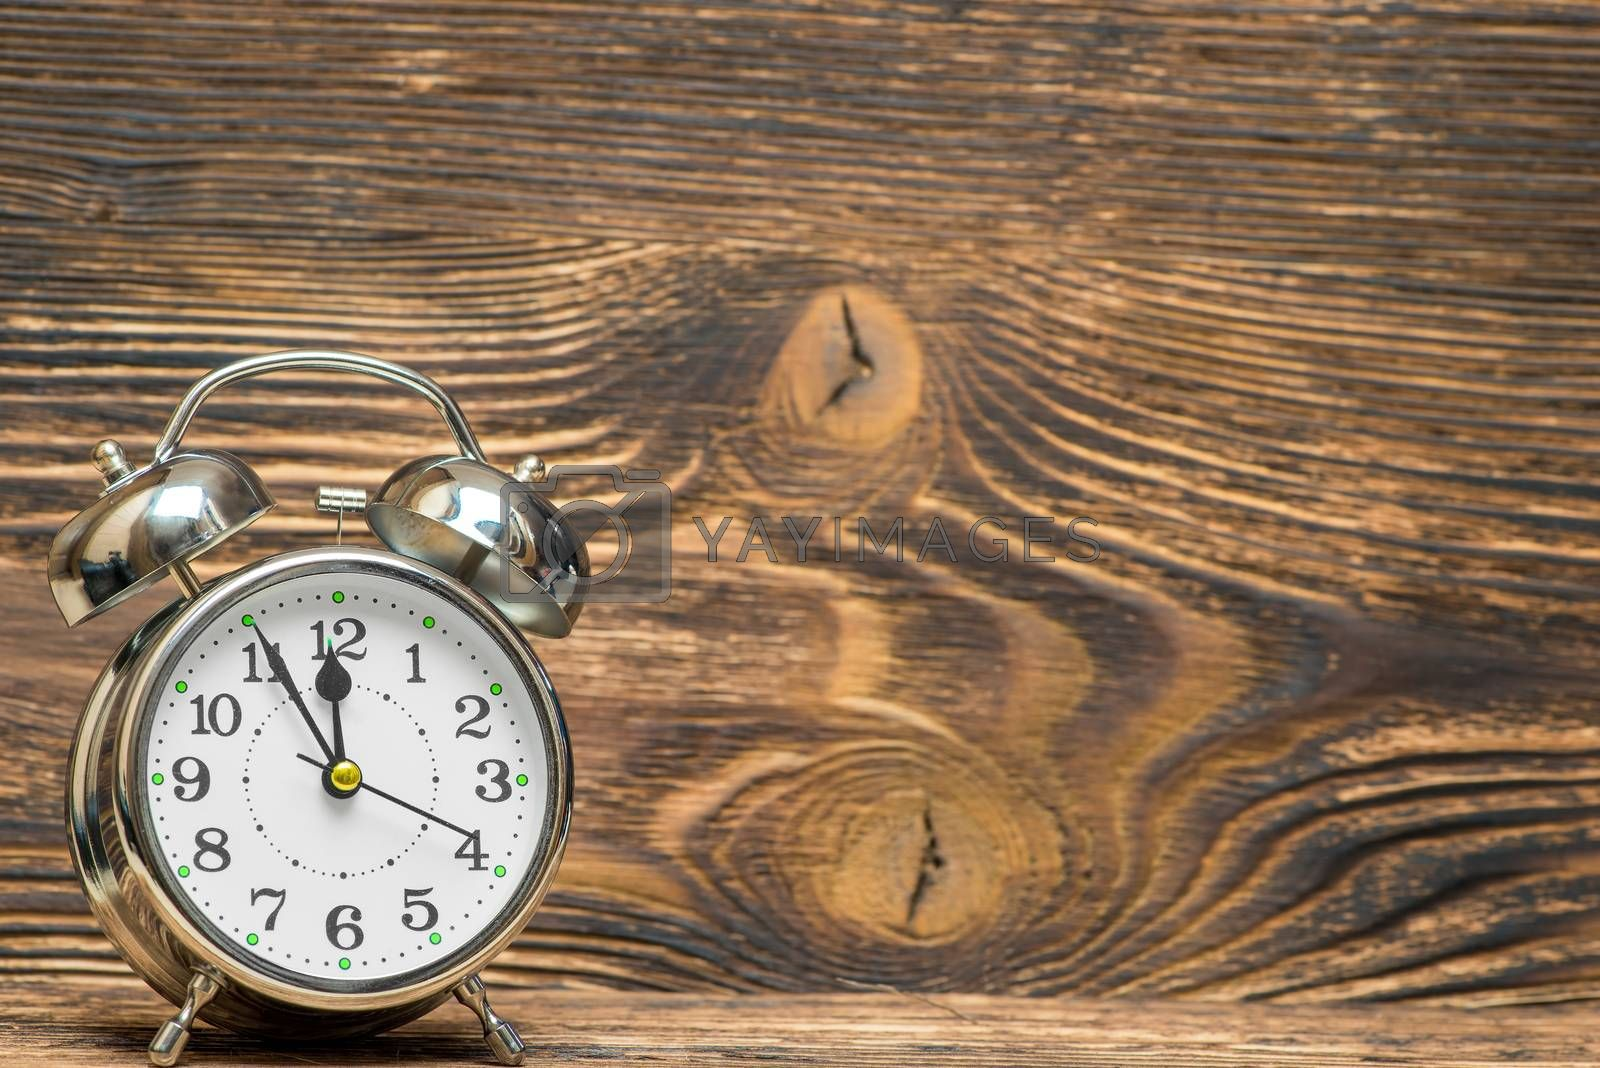 Retro alarm clock on a wooden background shows 12 hours, the spa by Labunskiy K.